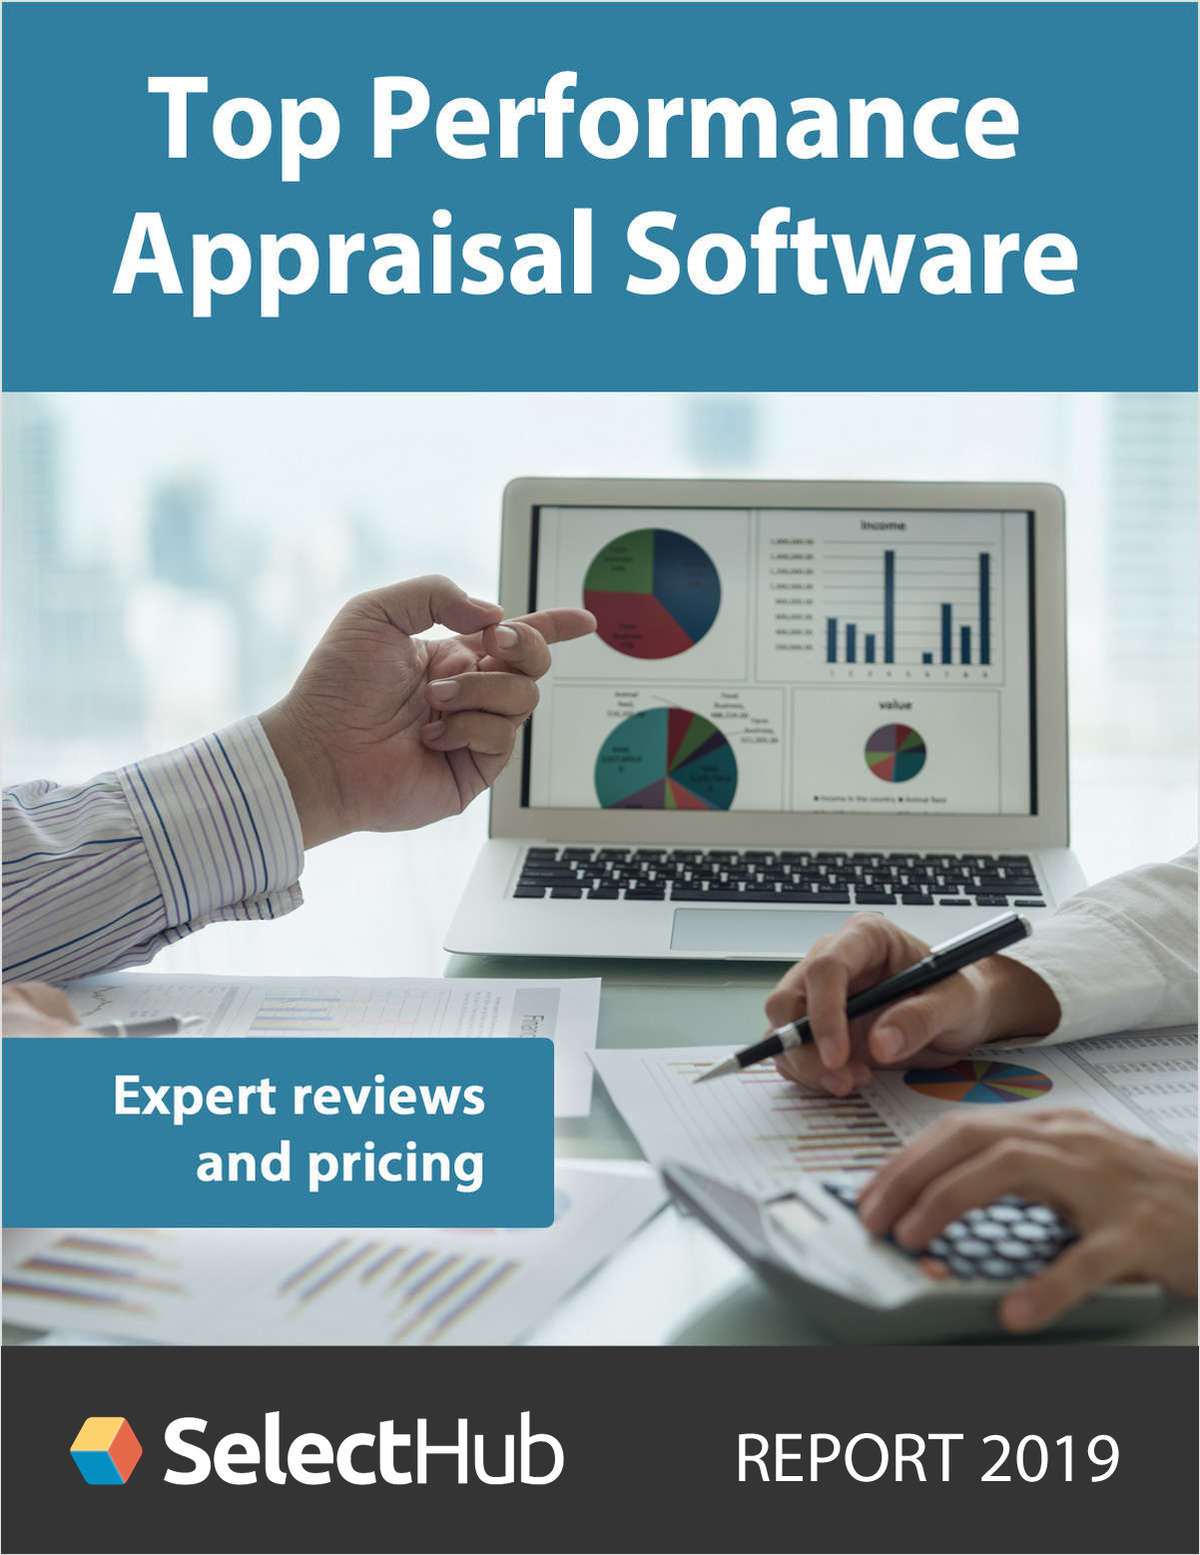 Top Performance Appraisal Software 2019--Get Expert Reviews and Pricing